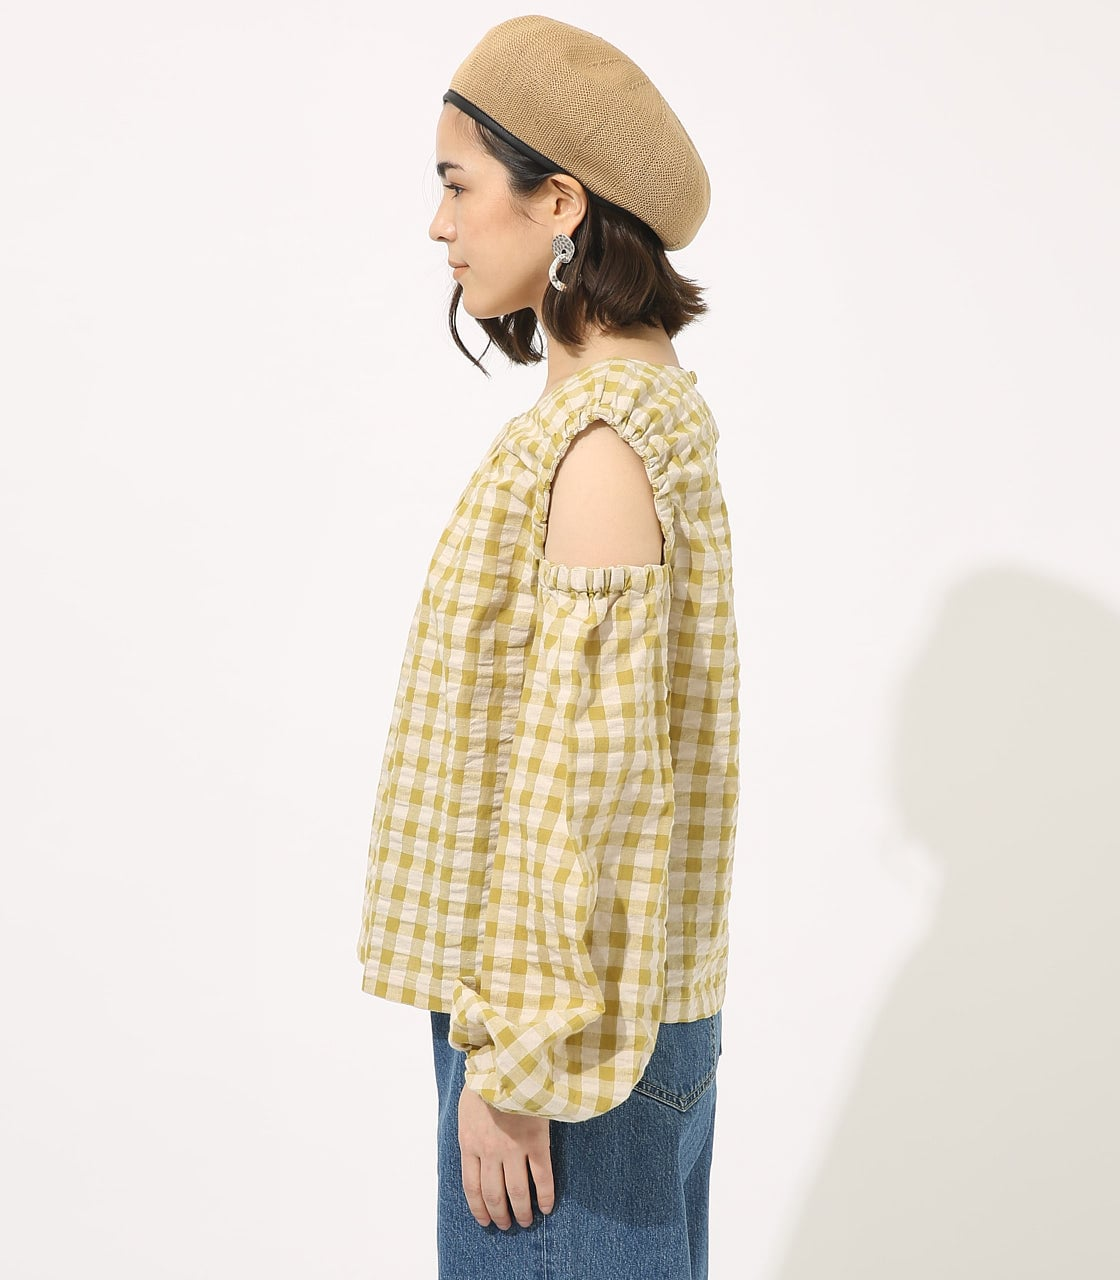 GINGHAM OPEN SHOULDER TOPS 【MOOK49掲載 90053】 詳細画像 柄LIME 5